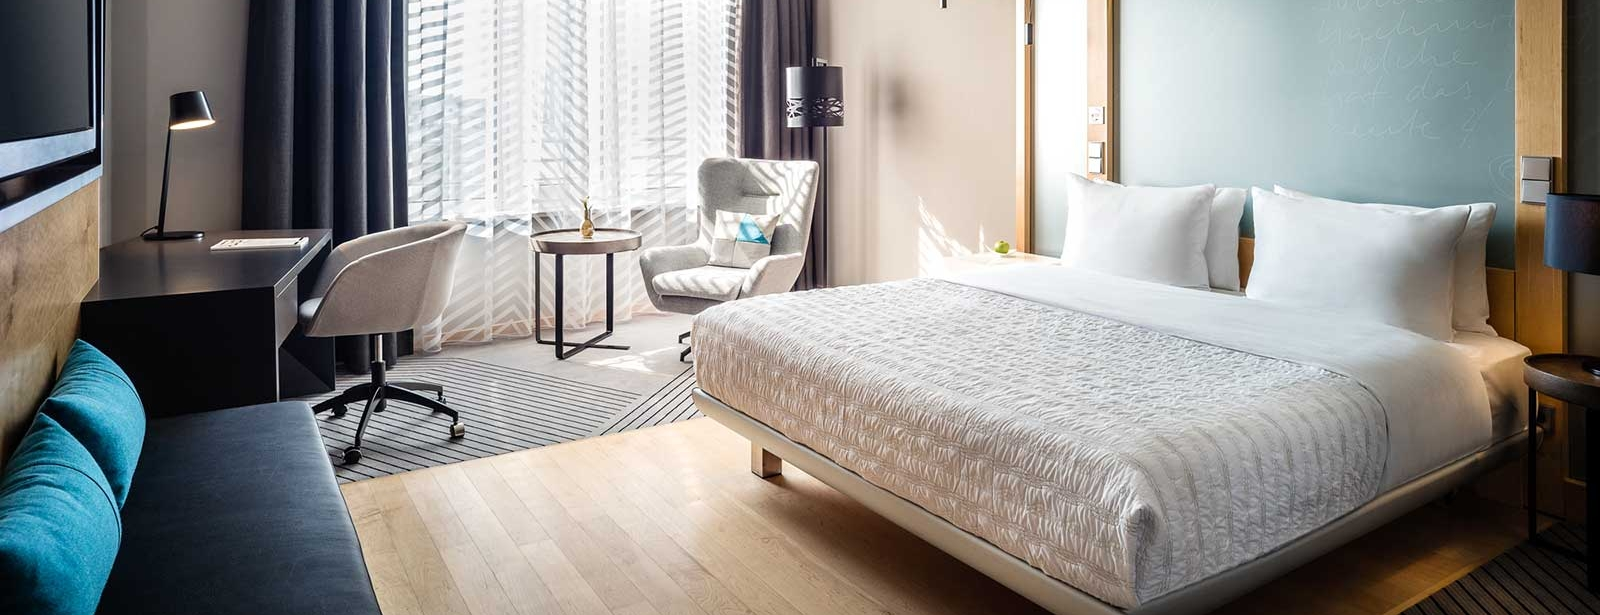 Superior Room King Size Bed - Le Méridien Hamburg - city view